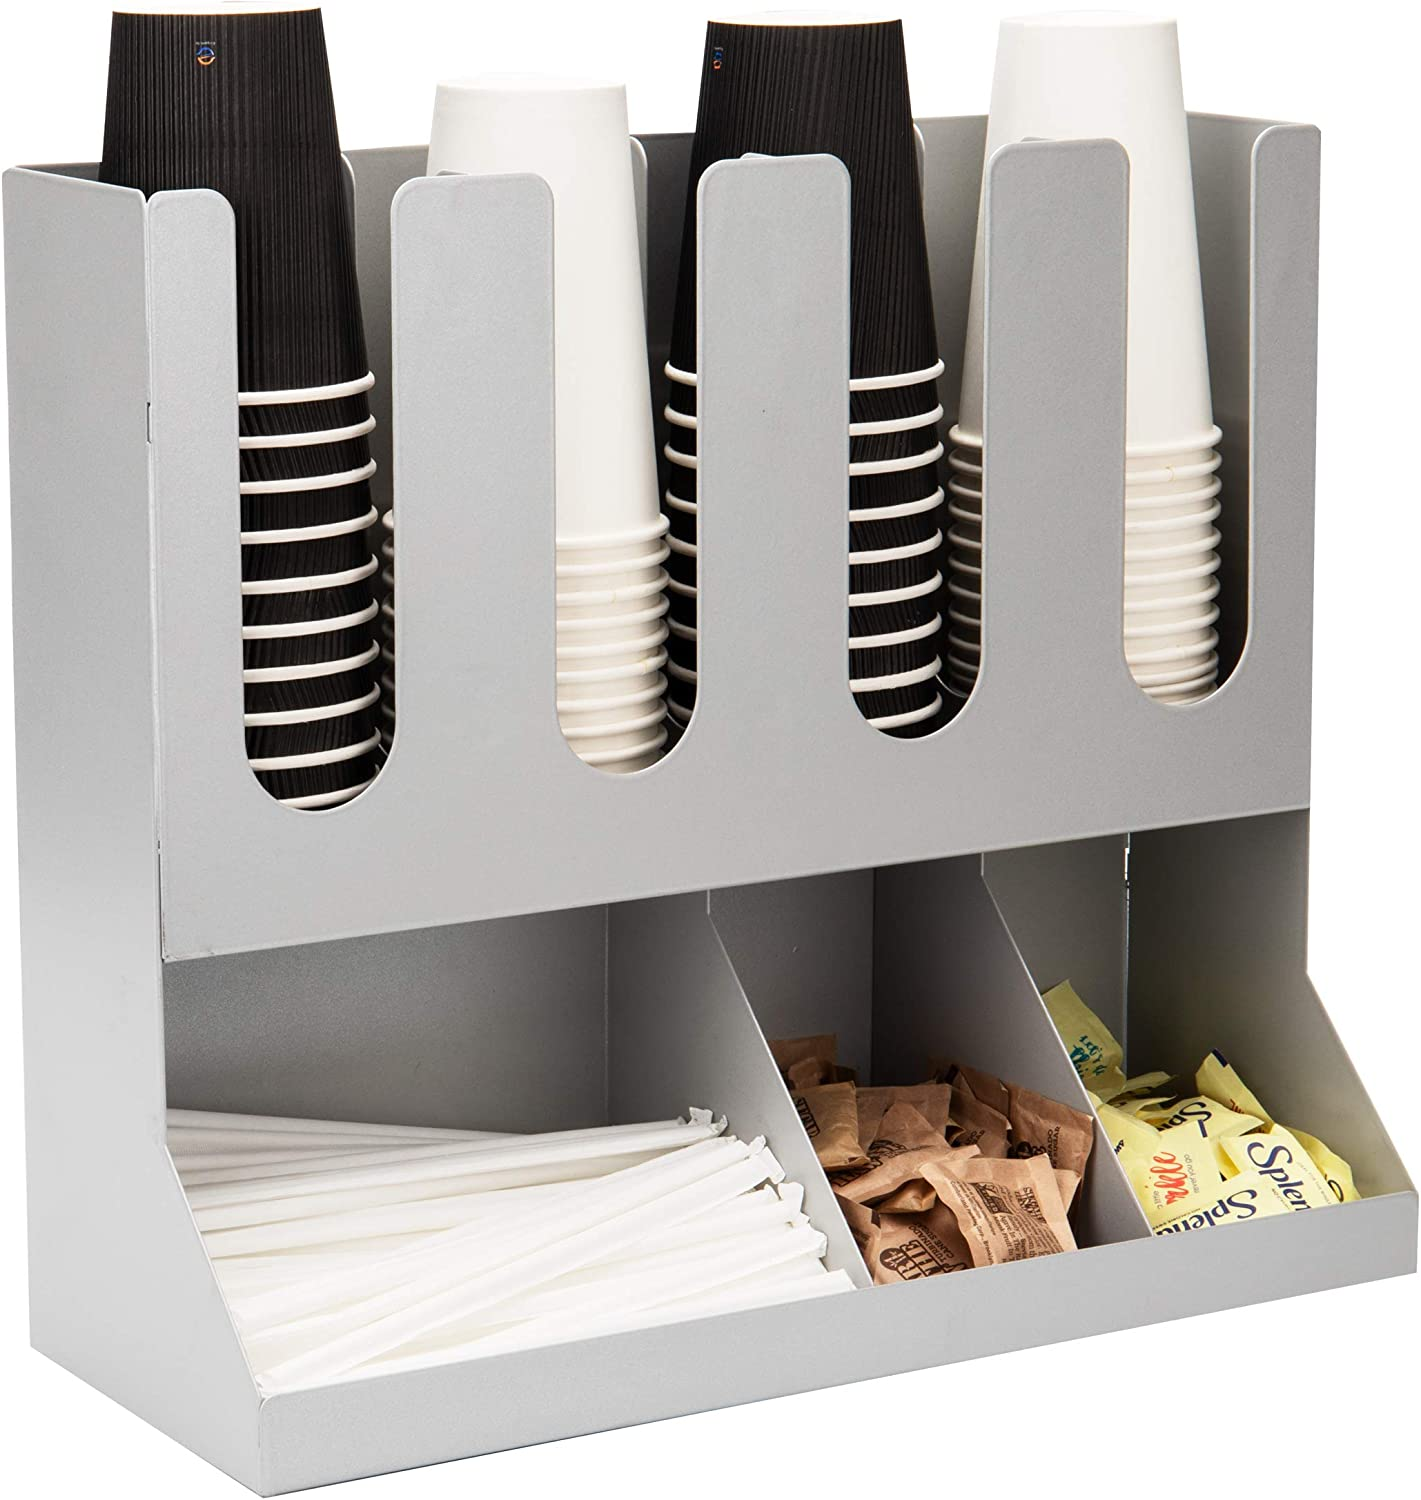 Mind Reader Upright Condiment Station 7 Section Countertop Organizer for Hot or Cold Disposable Cups, Sugar Packets, Straws, Utensils, Silver Stainless Steel